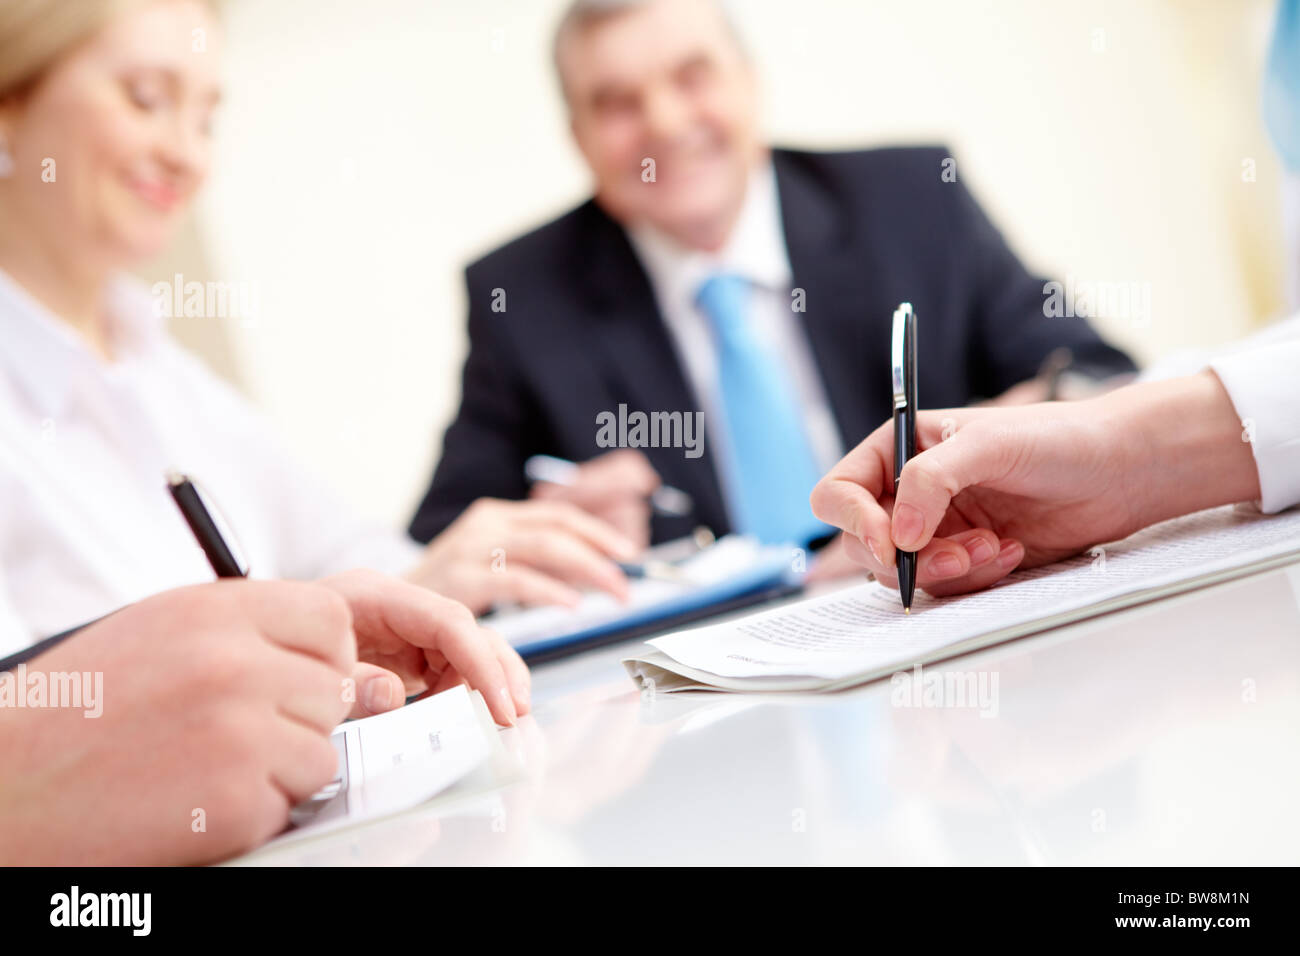 Close-up of business partners hands over document with their boss on background - Stock Image